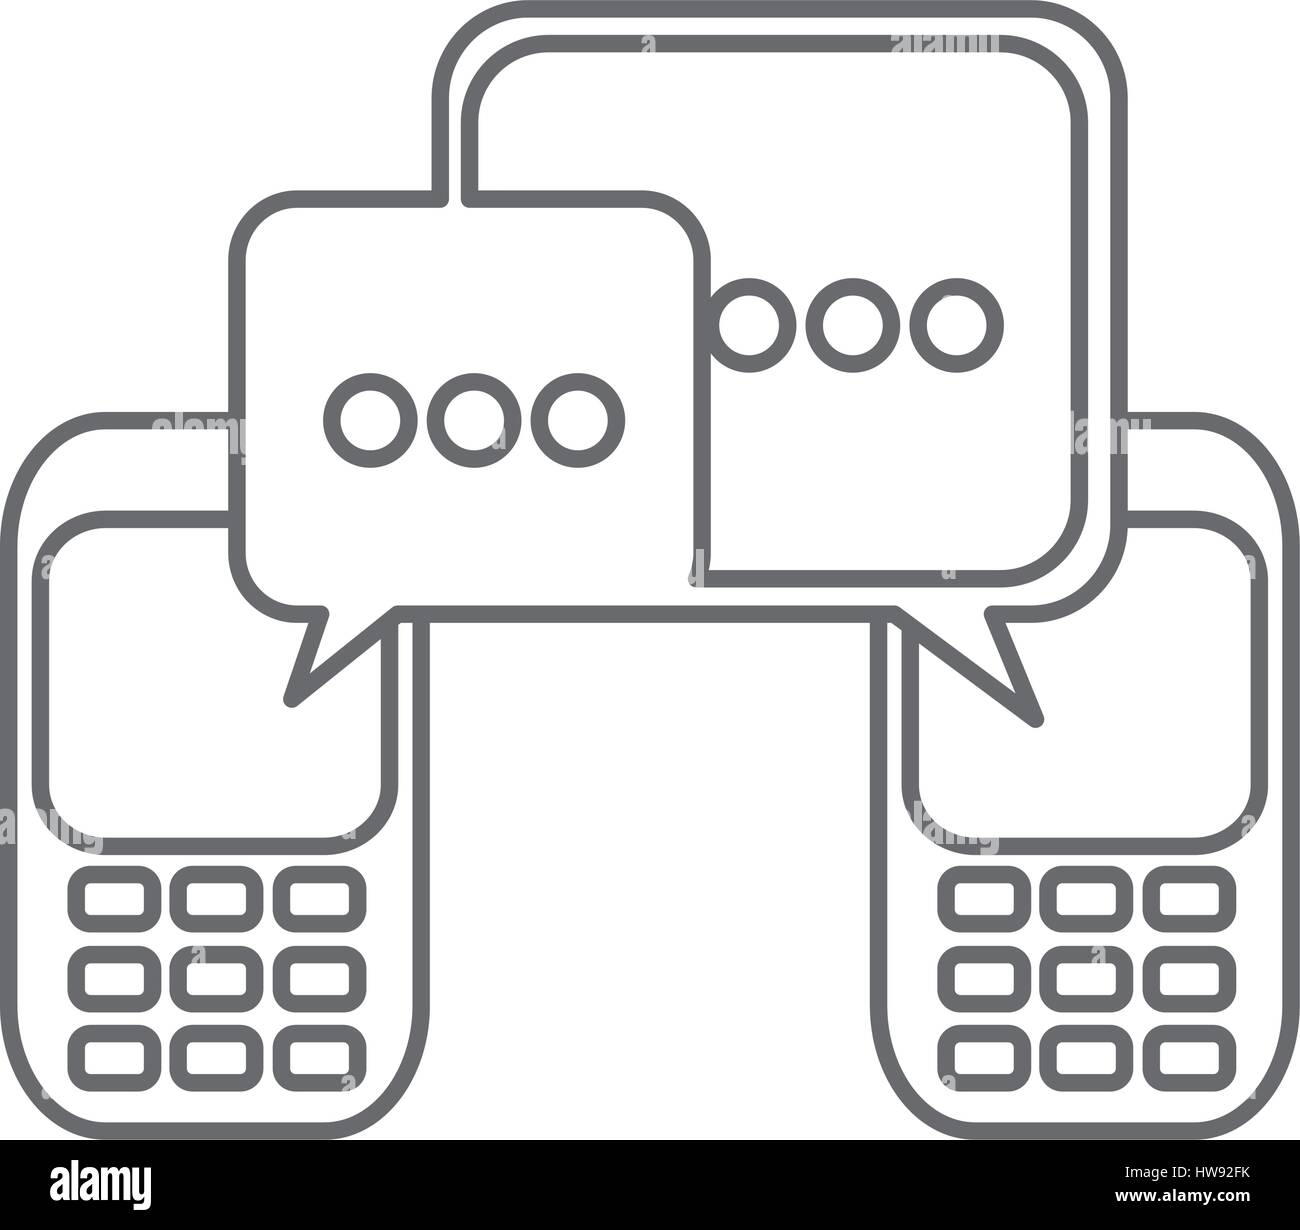 grayscale silhouette of cell phones communication dialogue box - Stock Image